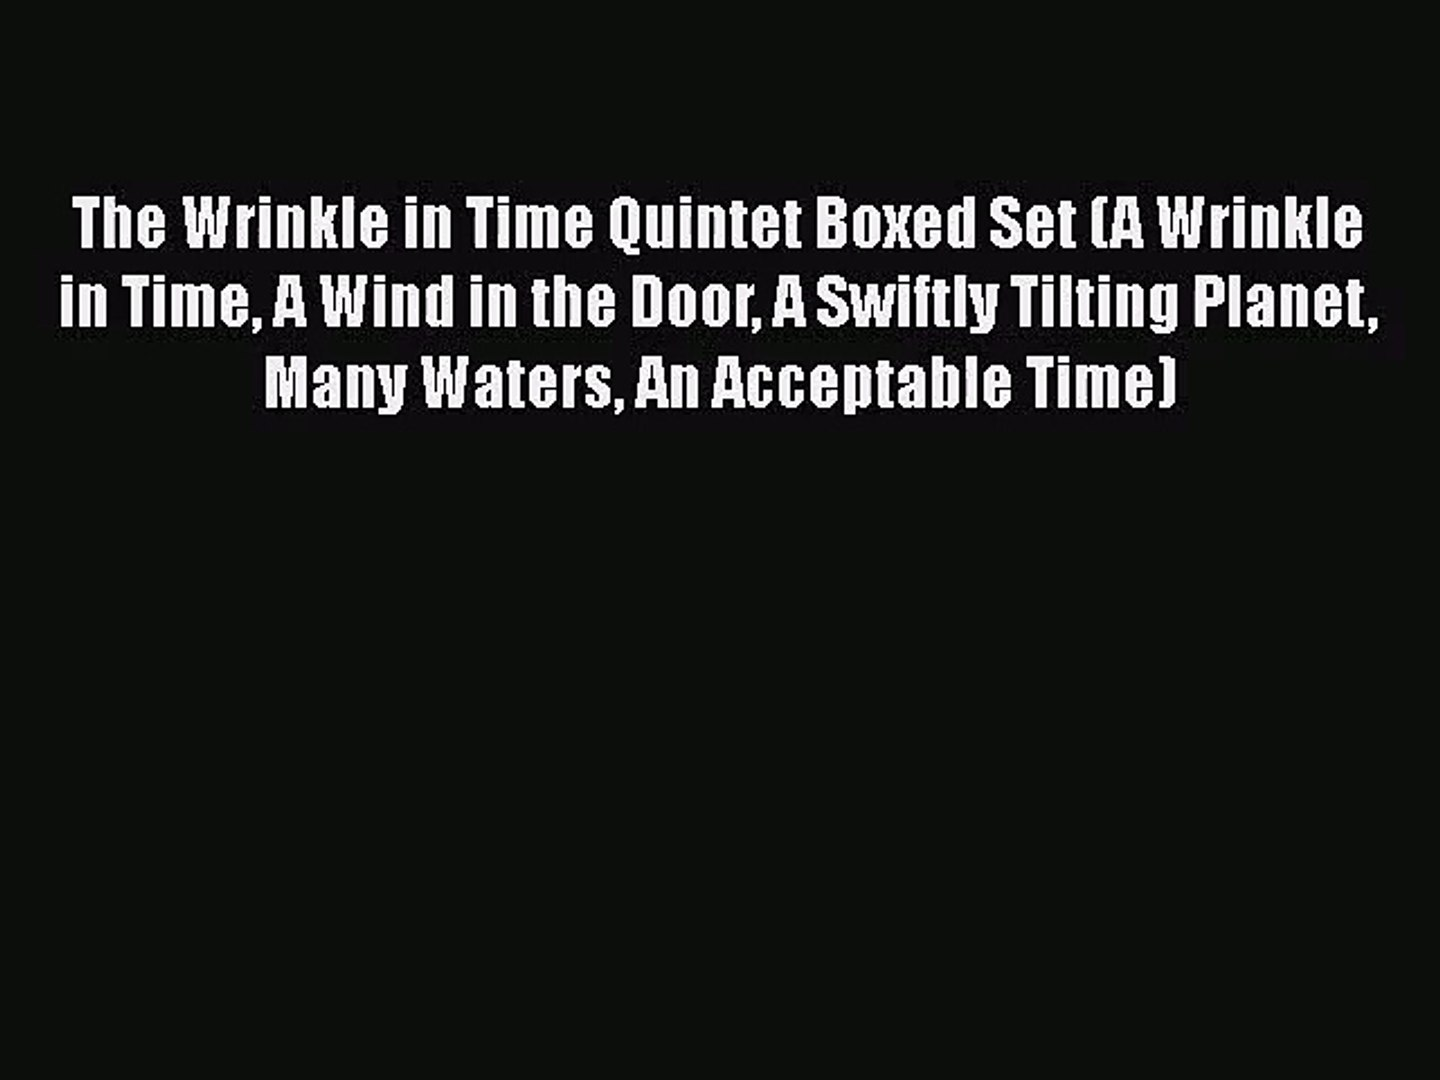 The Wrinkle in Time Quintet Boxed Set (A Wrinkle in Time A Wind in the Door A Swiftly Tilting